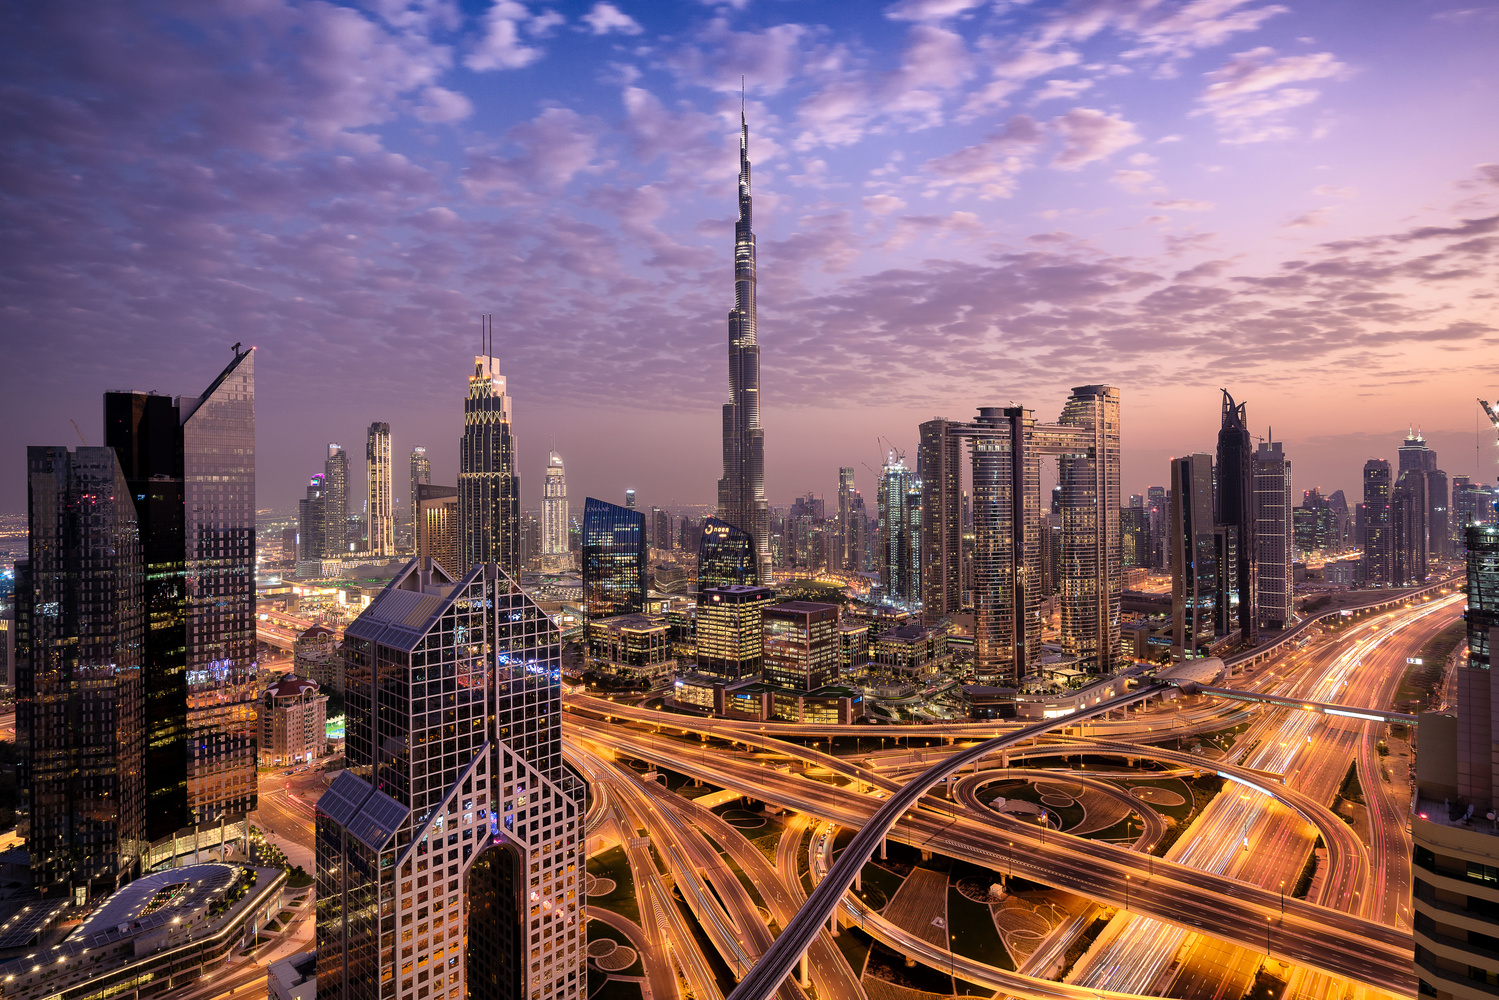 Downtown Dubai by Ben Preece